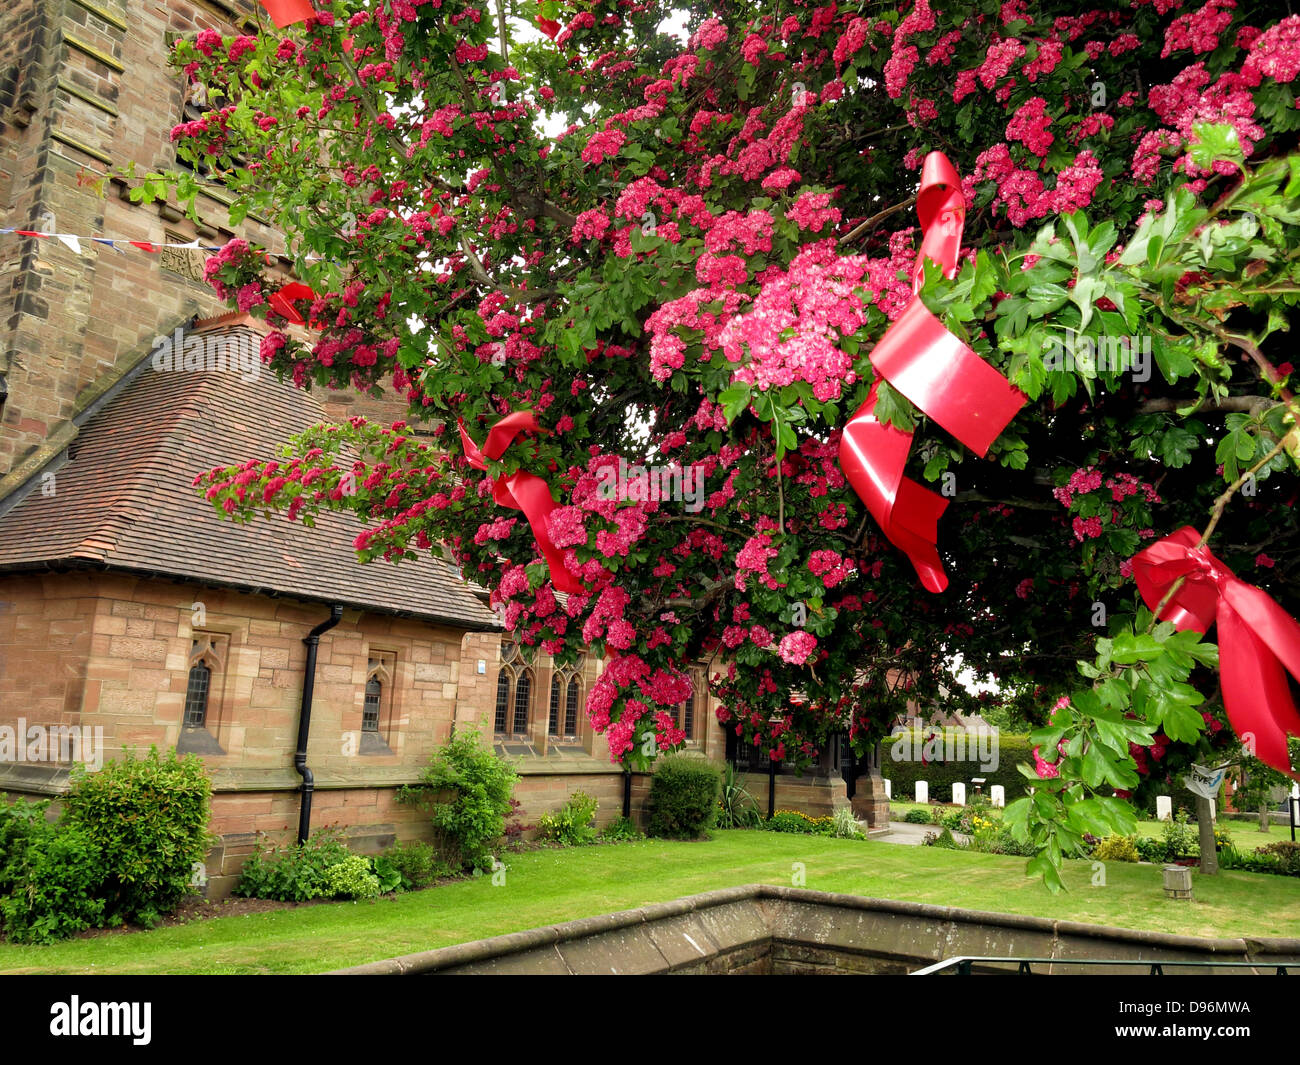 "The famous Thorn tree at Appleton Thorn village, South Warrington, England  dressed for the annual June  ""Bawming Stock Photo"